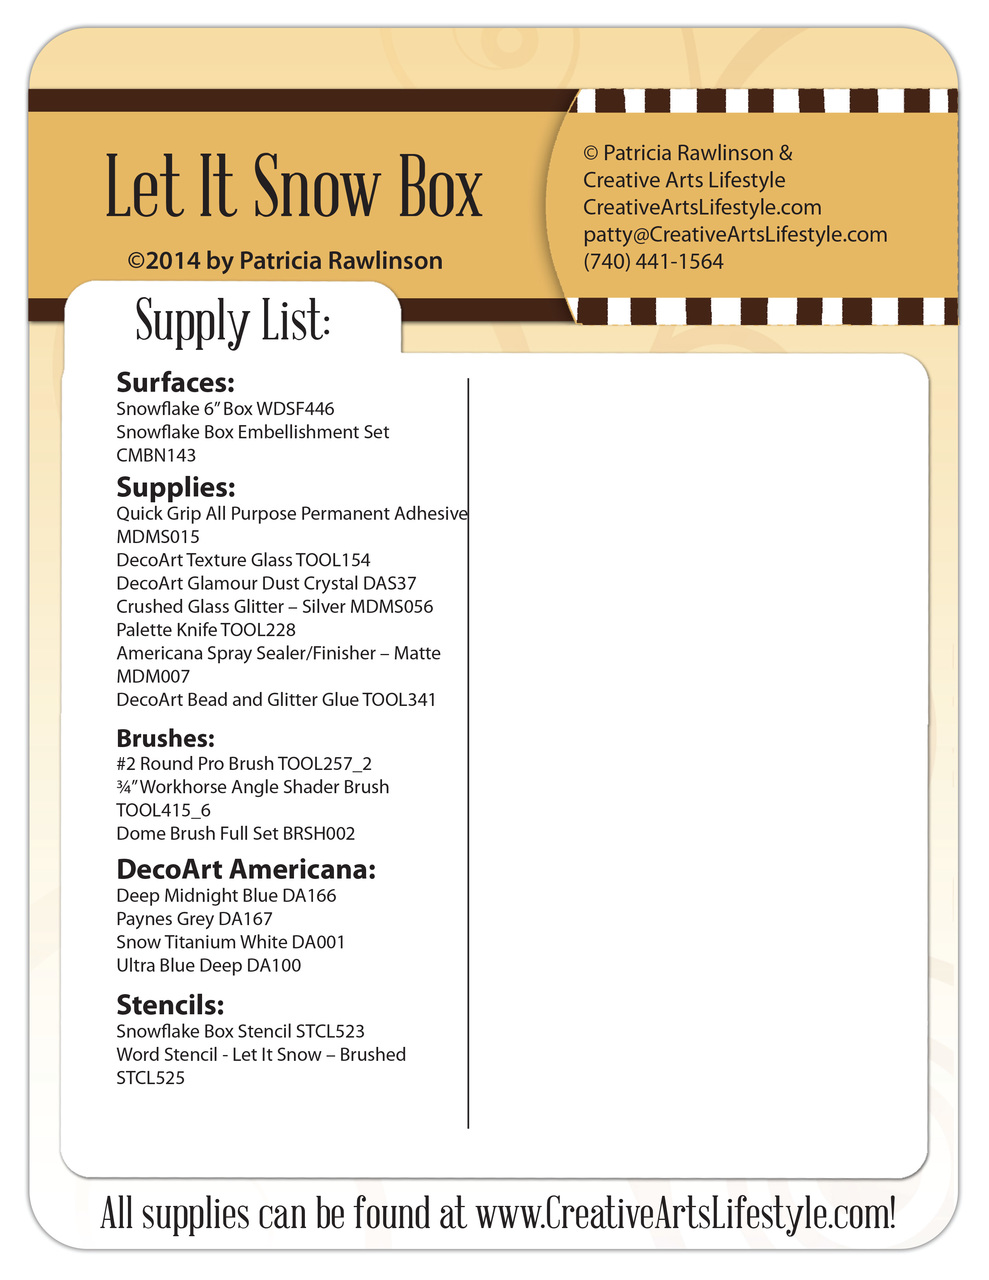 Let it Snow E-Packet - Patricia Rawlinson  1